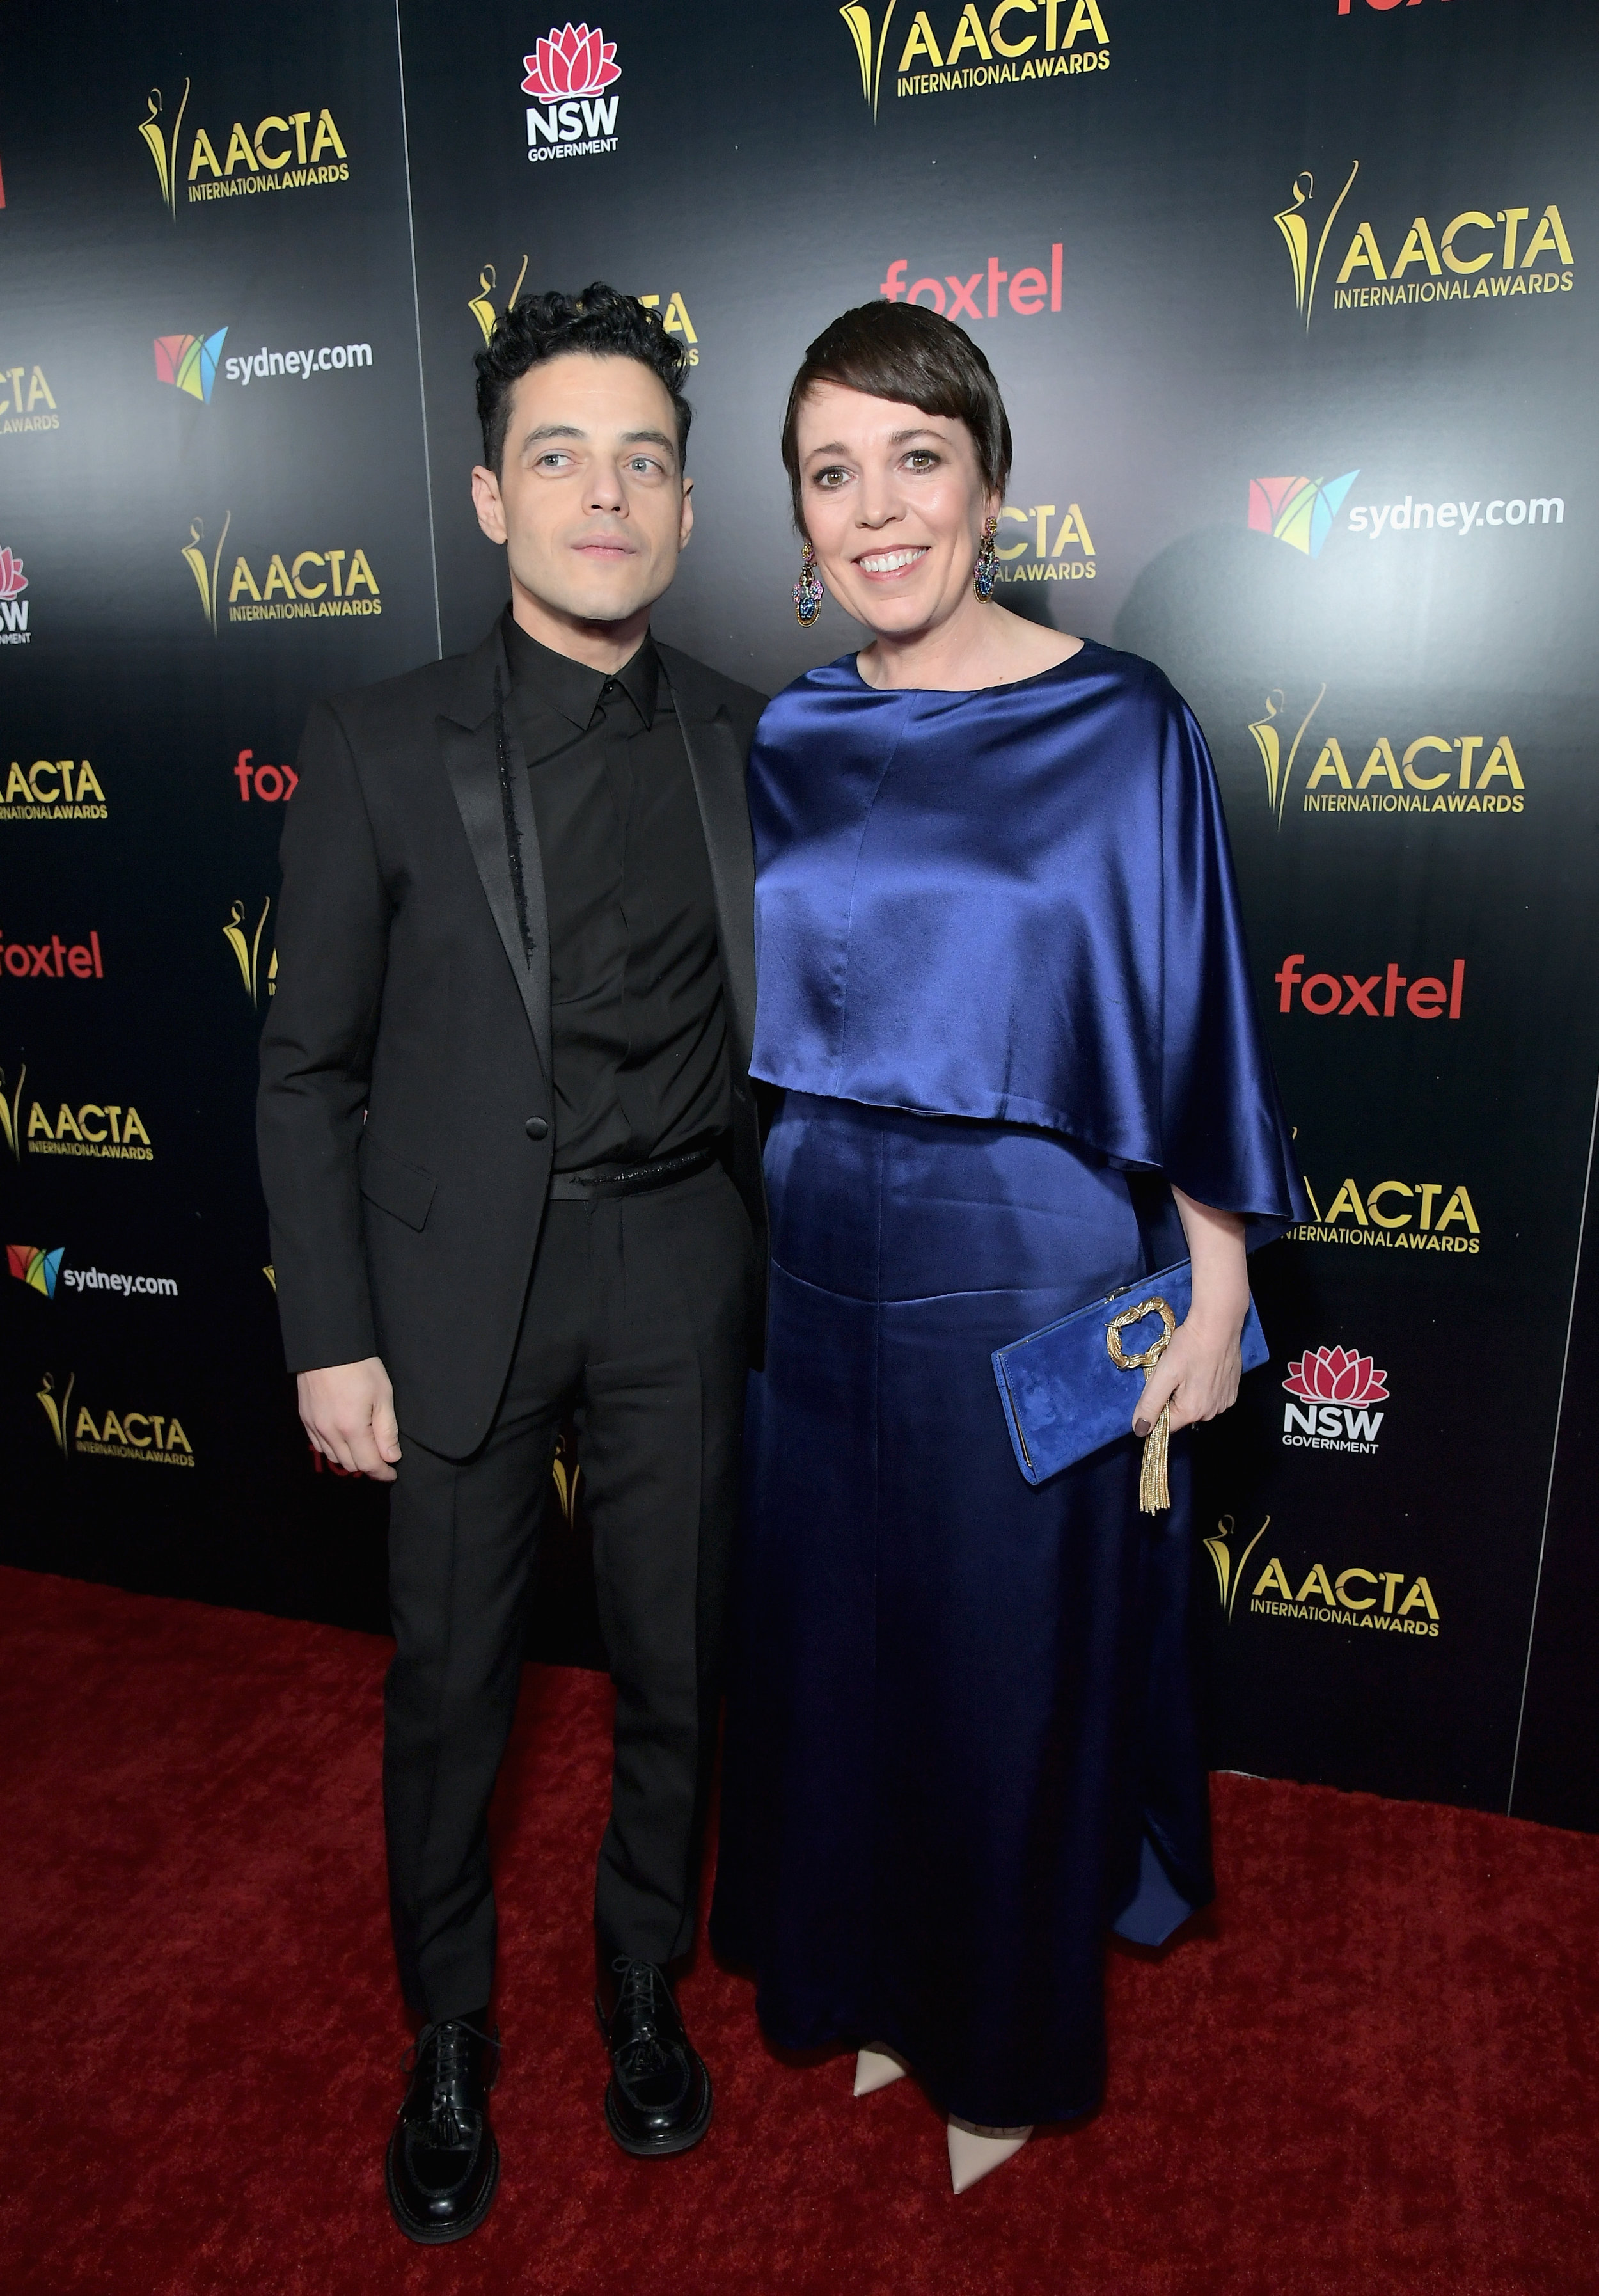 775191456PL00144_8th_AACTA_.JPG